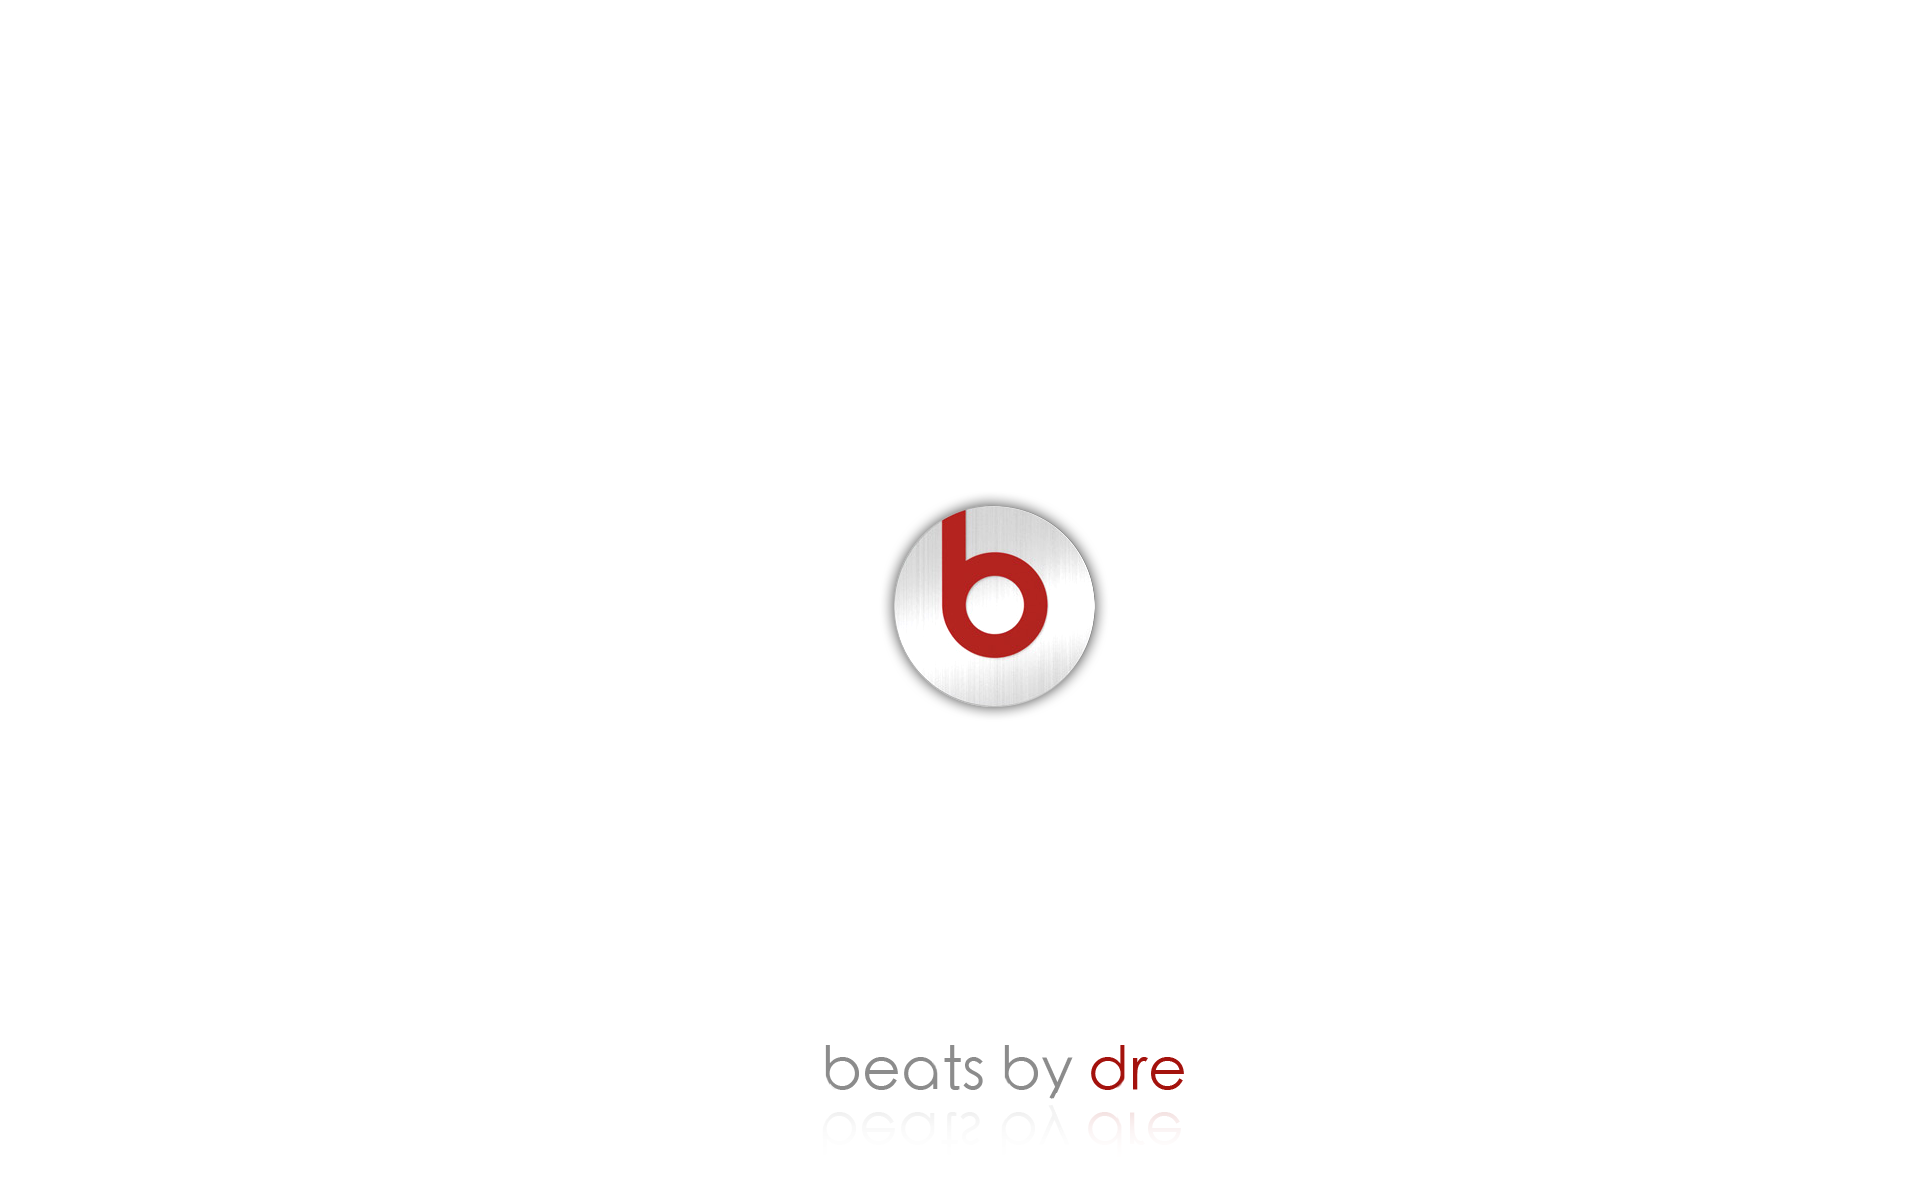 Pics In High Quality: Free Beats By Dre by Adan Van, 08.04.13